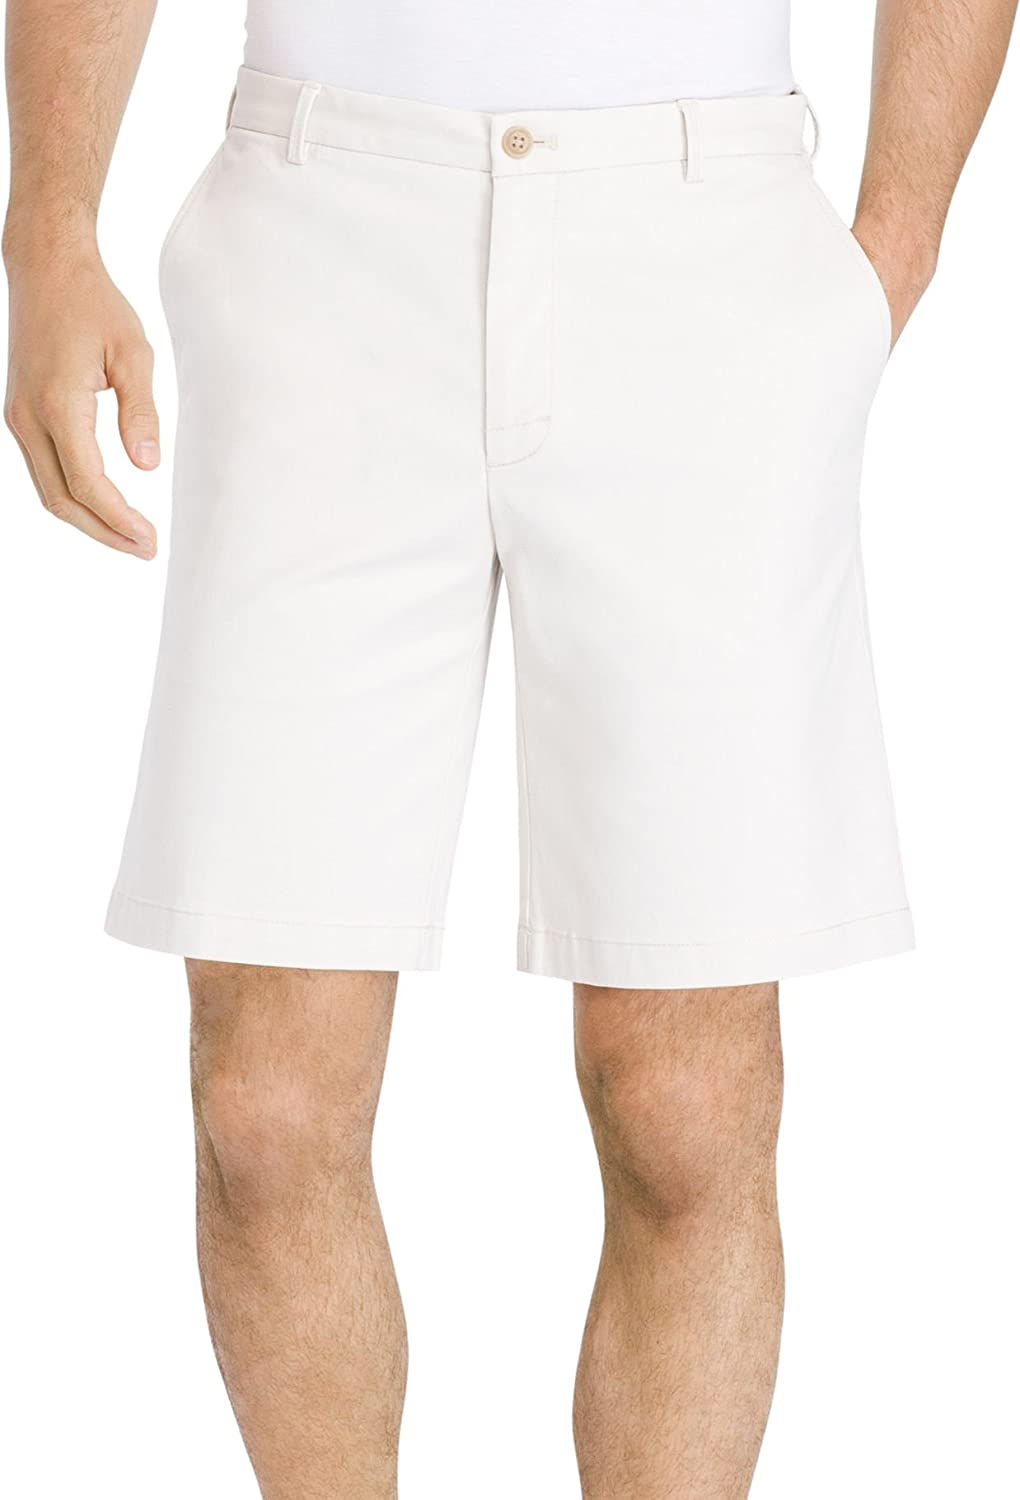 Izod Mens Saltwater Stretch Chino Short At Amazon Clothing Store Golf Wiring Schematicit Shortsi Put The Positive Battery Cable On